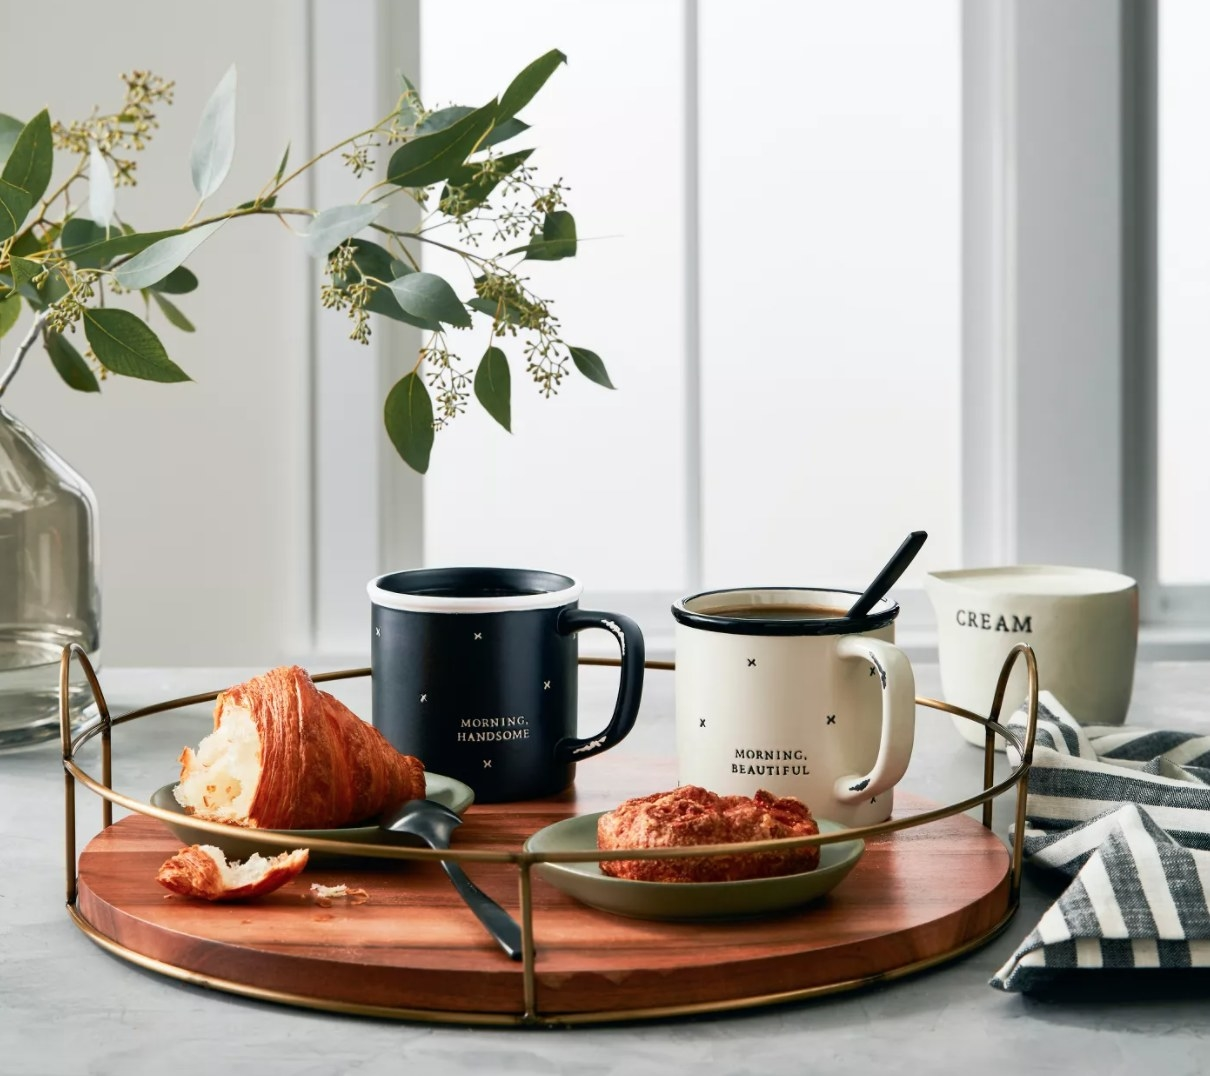 A wooden tray with brass frame and handles, holding breakfast and coffee